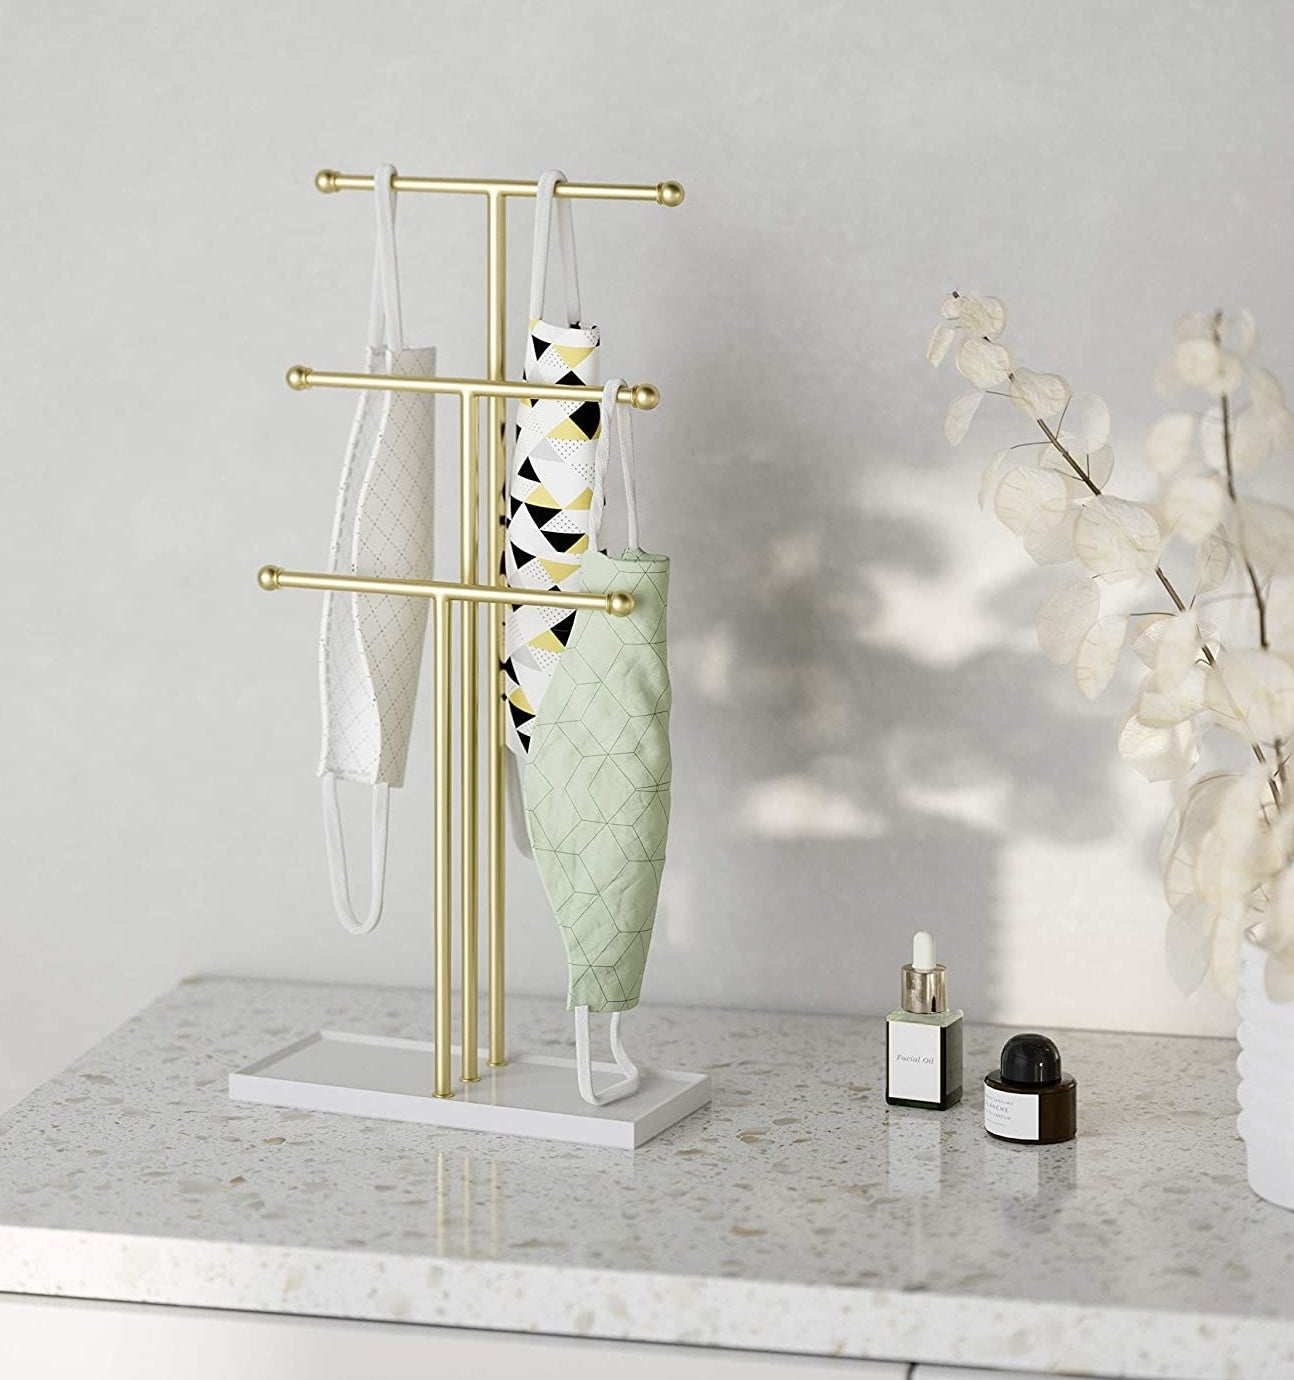 a jewelry stand with face masks hanging off of it